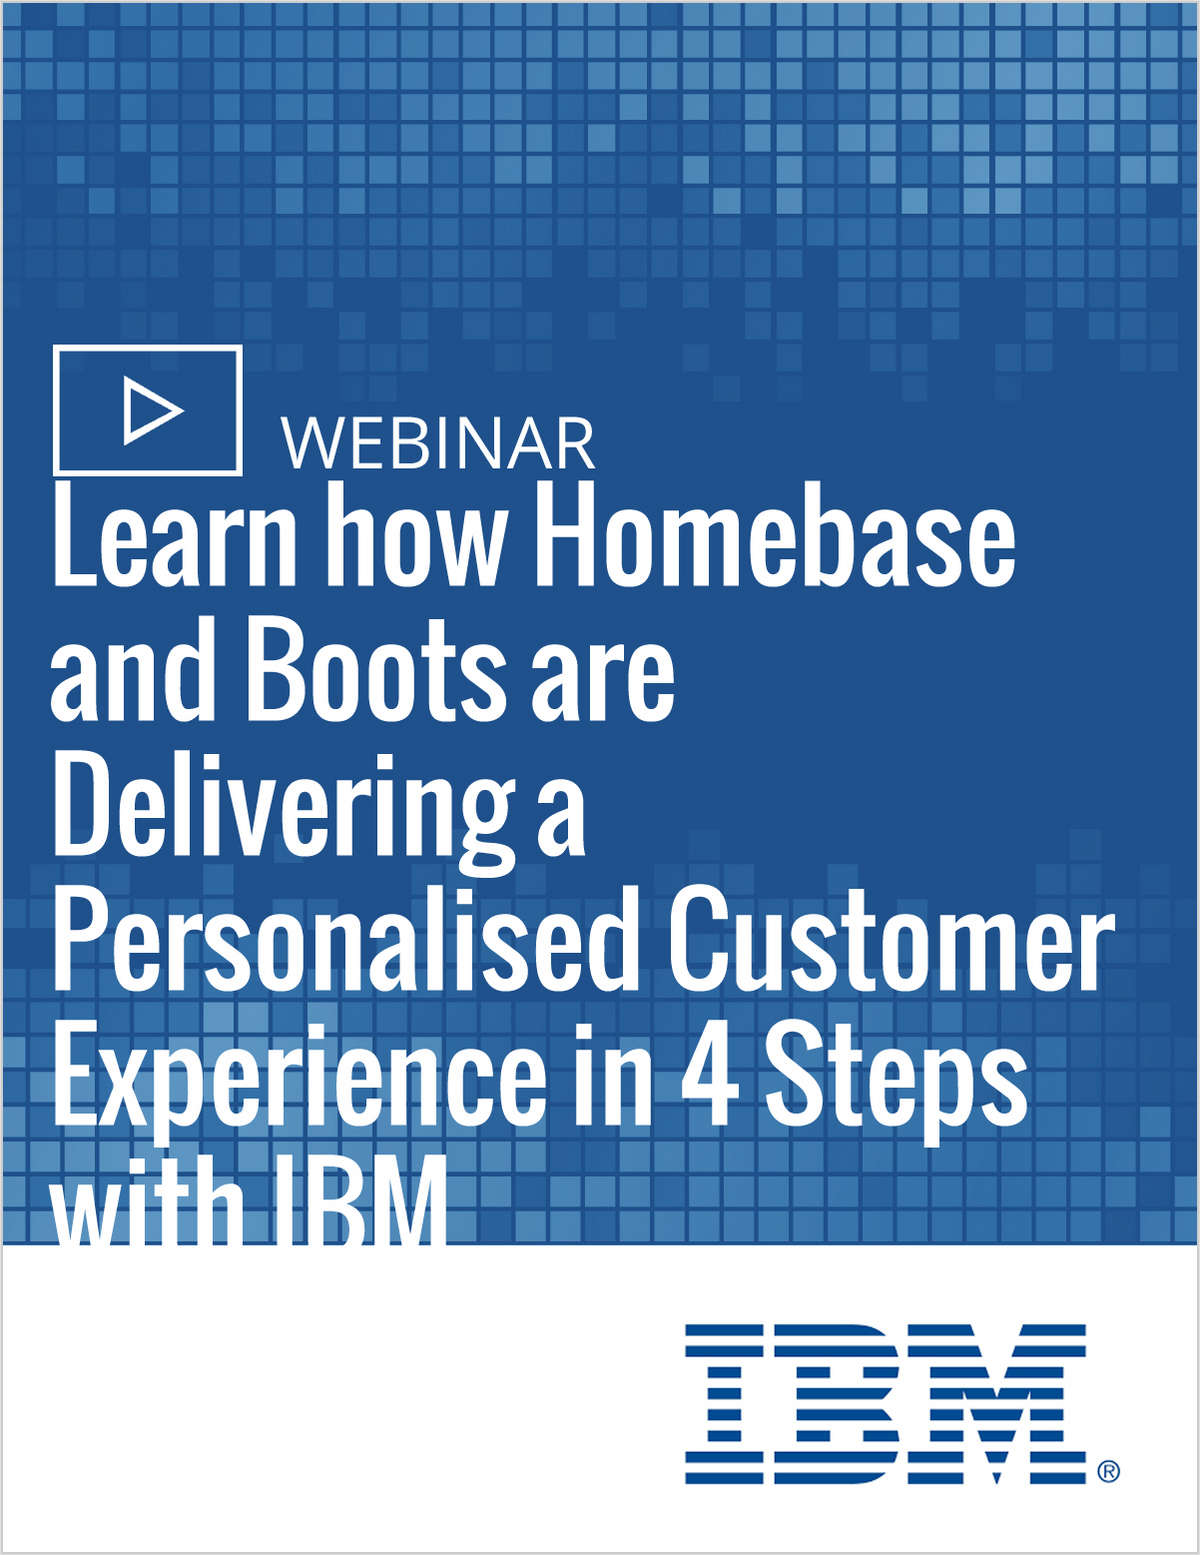 Learn how Homebase and Boots are Delivering a Personalised Customer Experience in 4 Steps with IBM